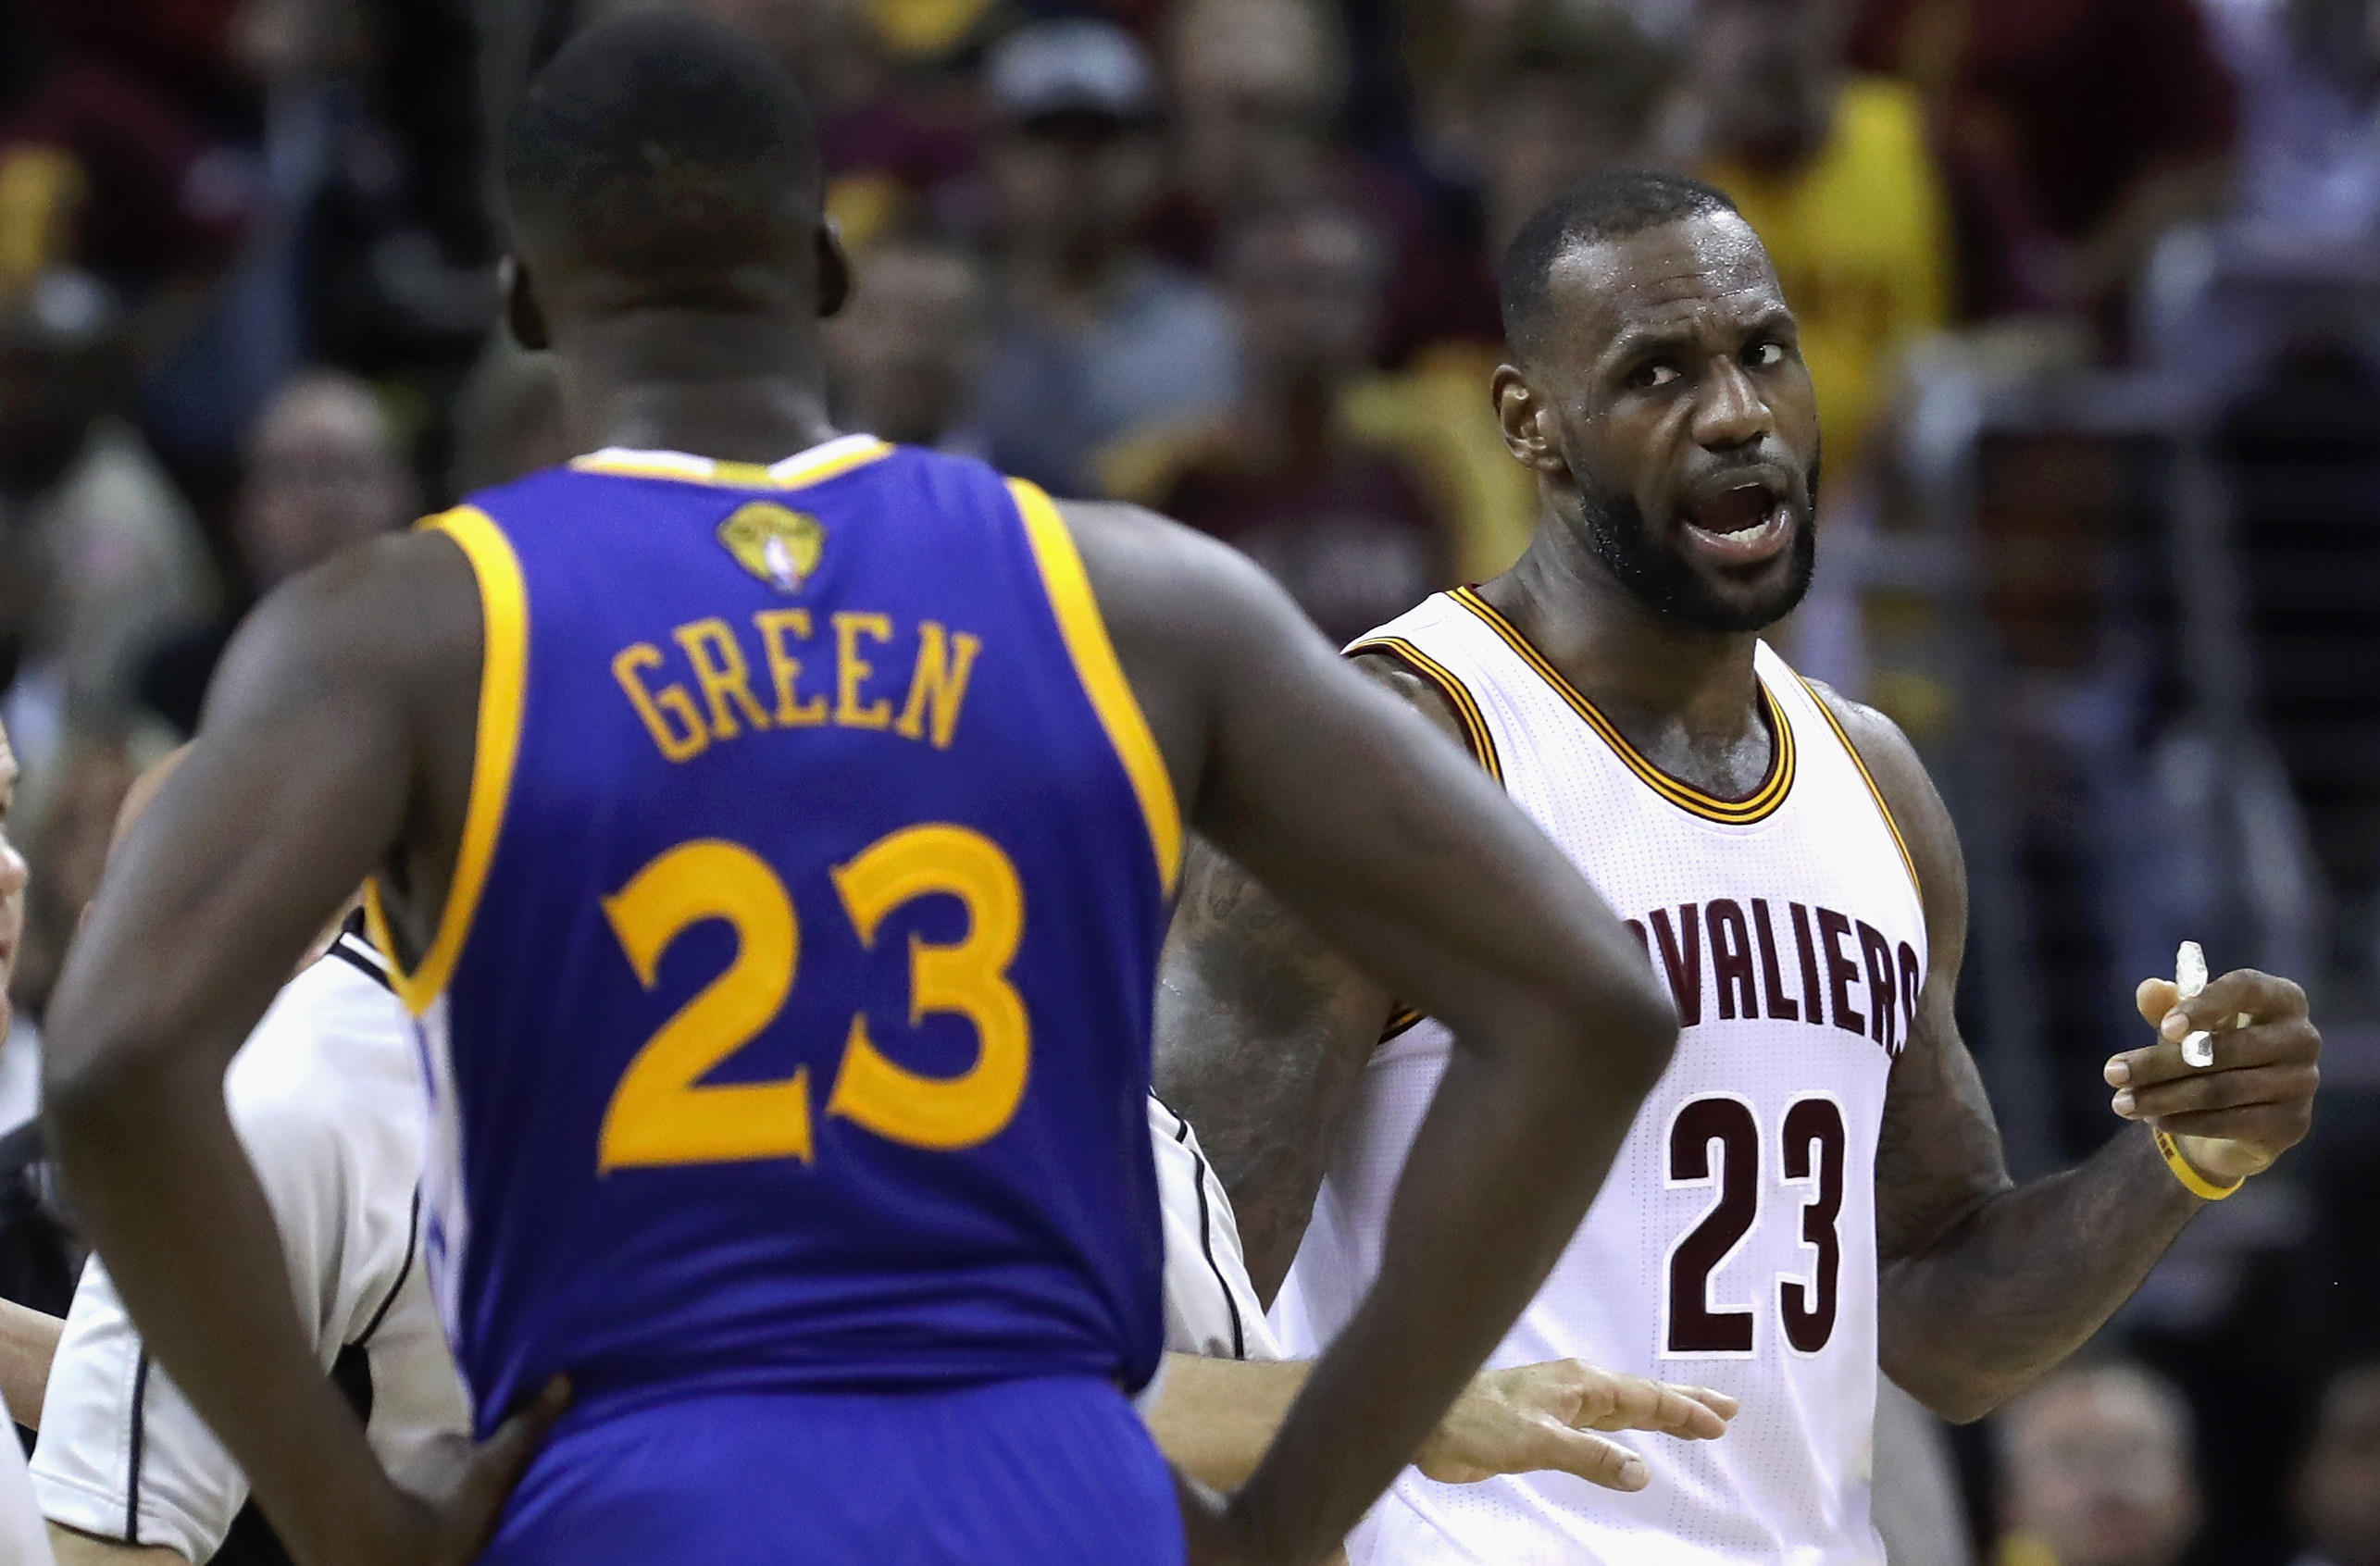 CLEVELAND, OH - JUNE 10:  LeBron James #23 of the Cleveland Cavaliers and Draymond Green #23 of the Golden State Warriors exchange words during a time out during the fourth quarter in Game 4 of the 2016 NBA Finals at Quicken Loans Arena on June 10, 2016 i